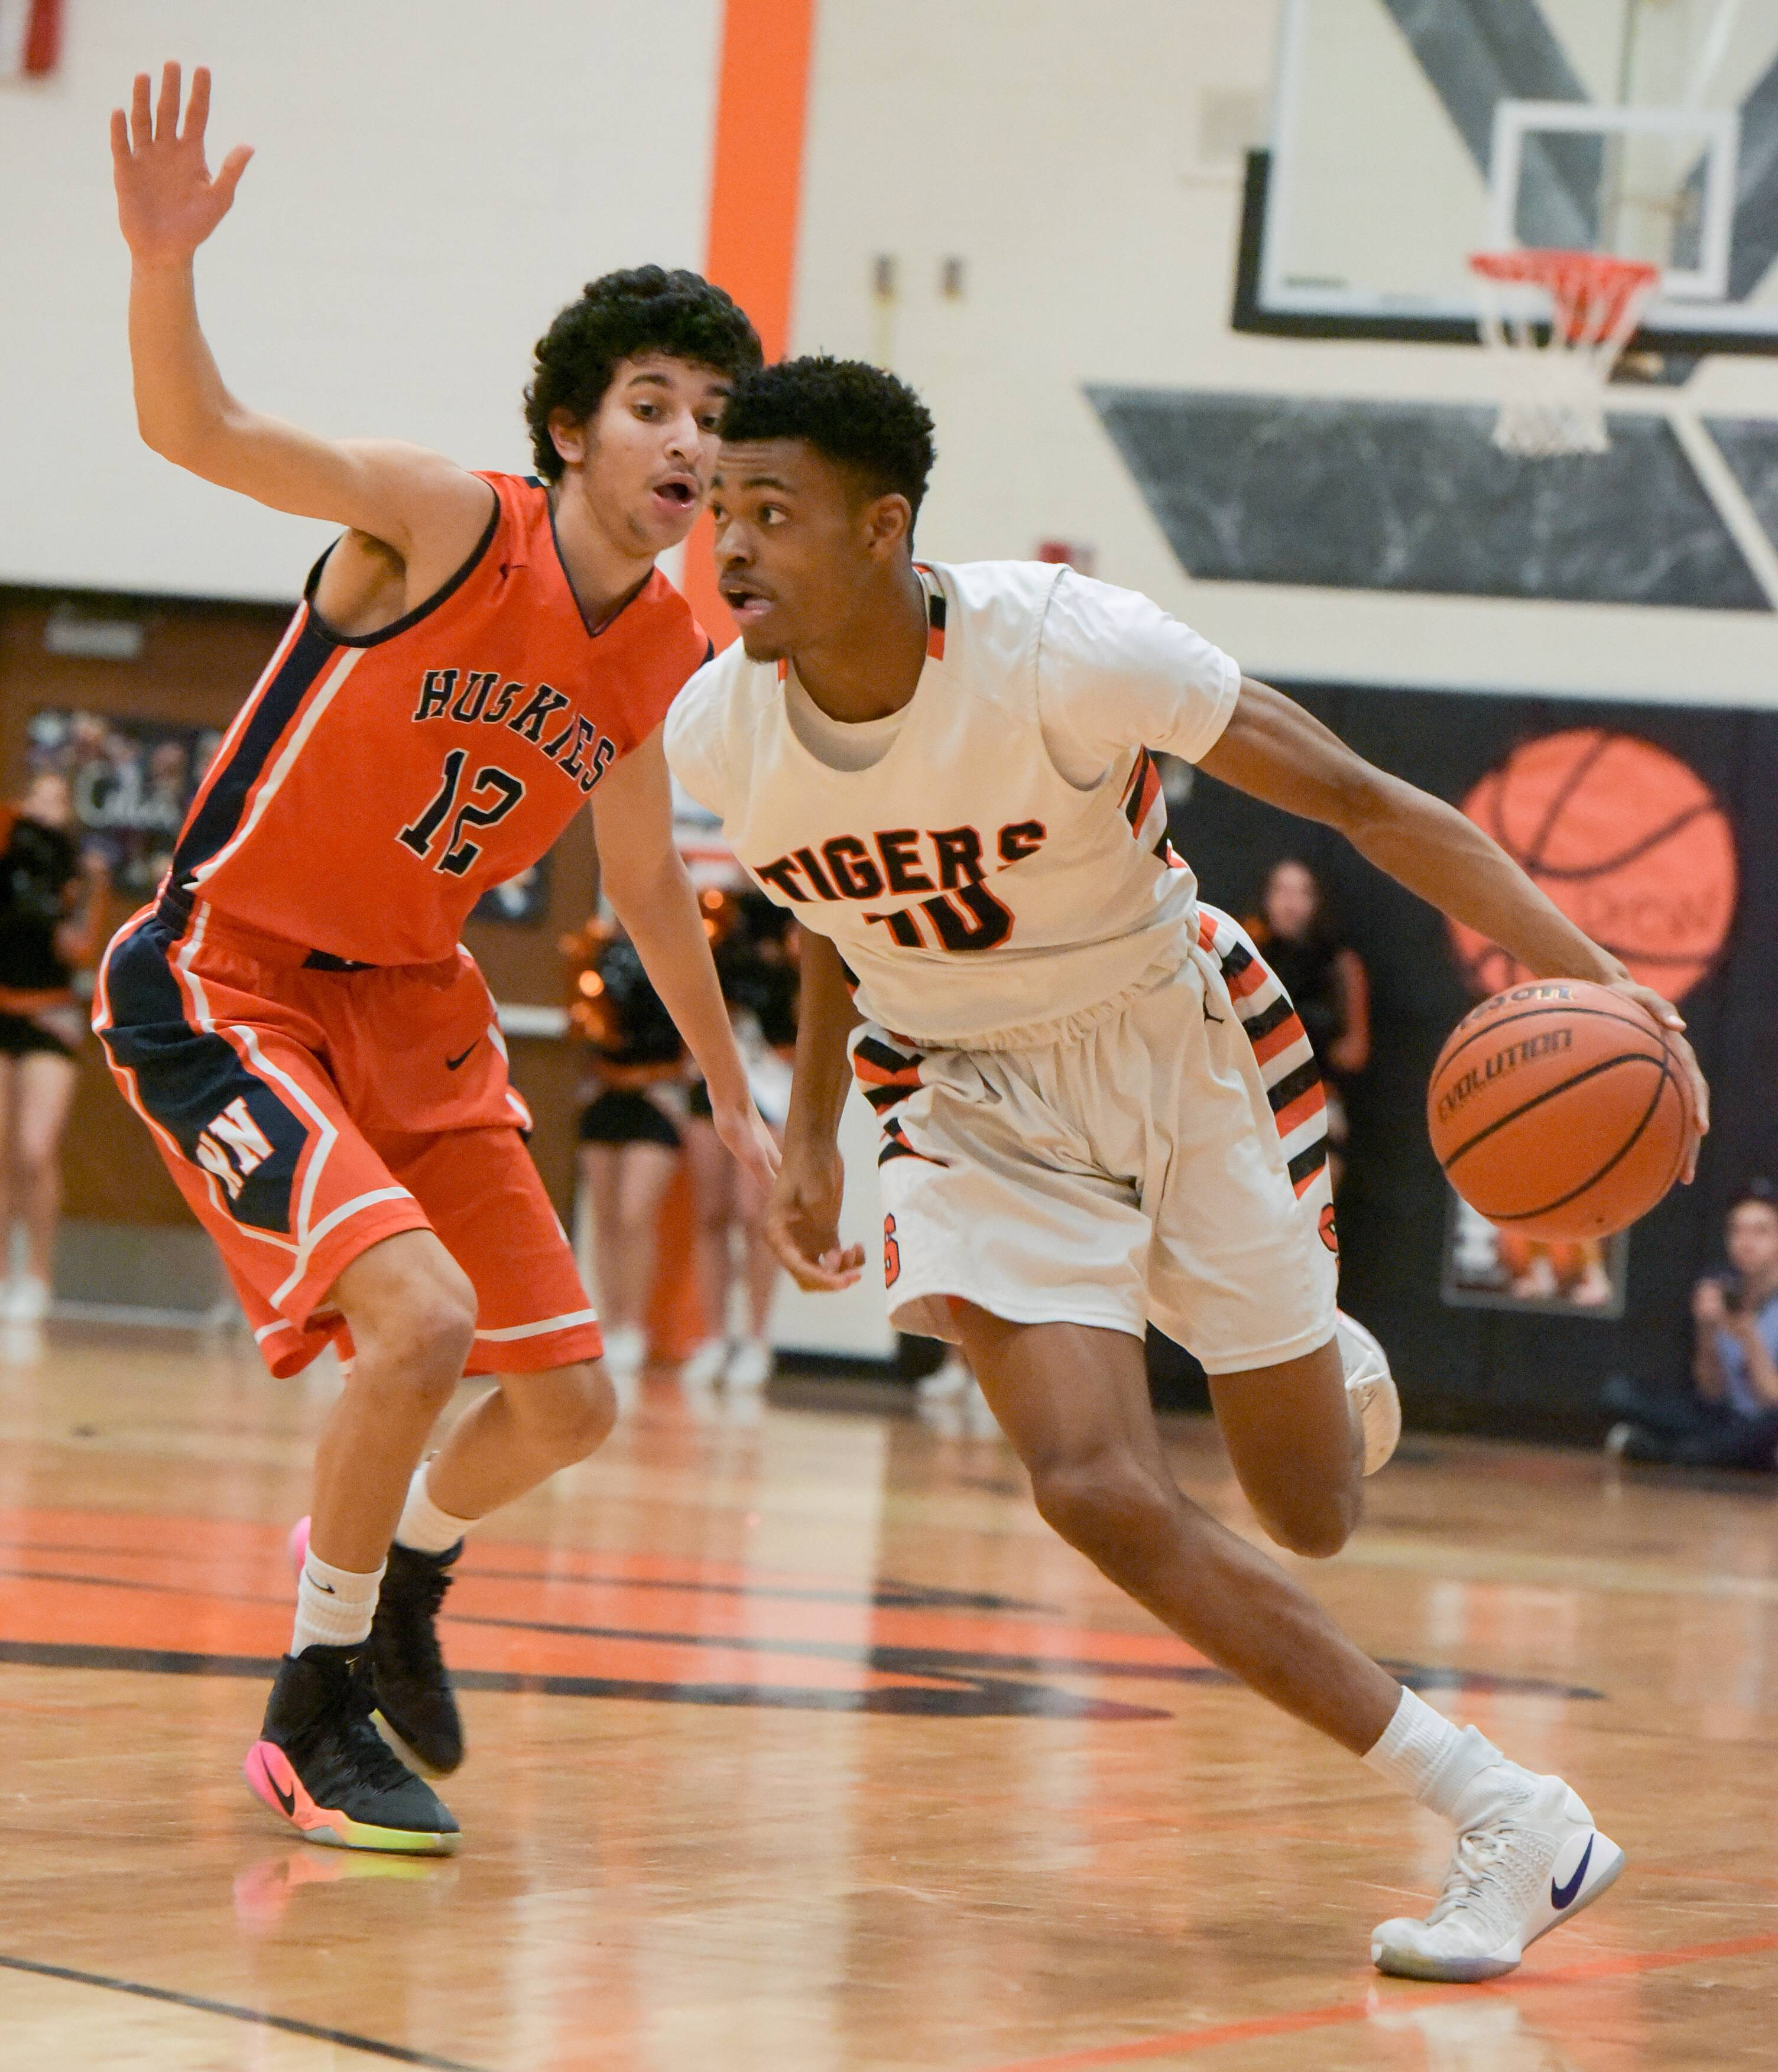 Wheaton Warrenville South's Dillon Durrett drives around Naperville North's Youcef Merabet during boys varsity basketball Wednesday in Wheaton.